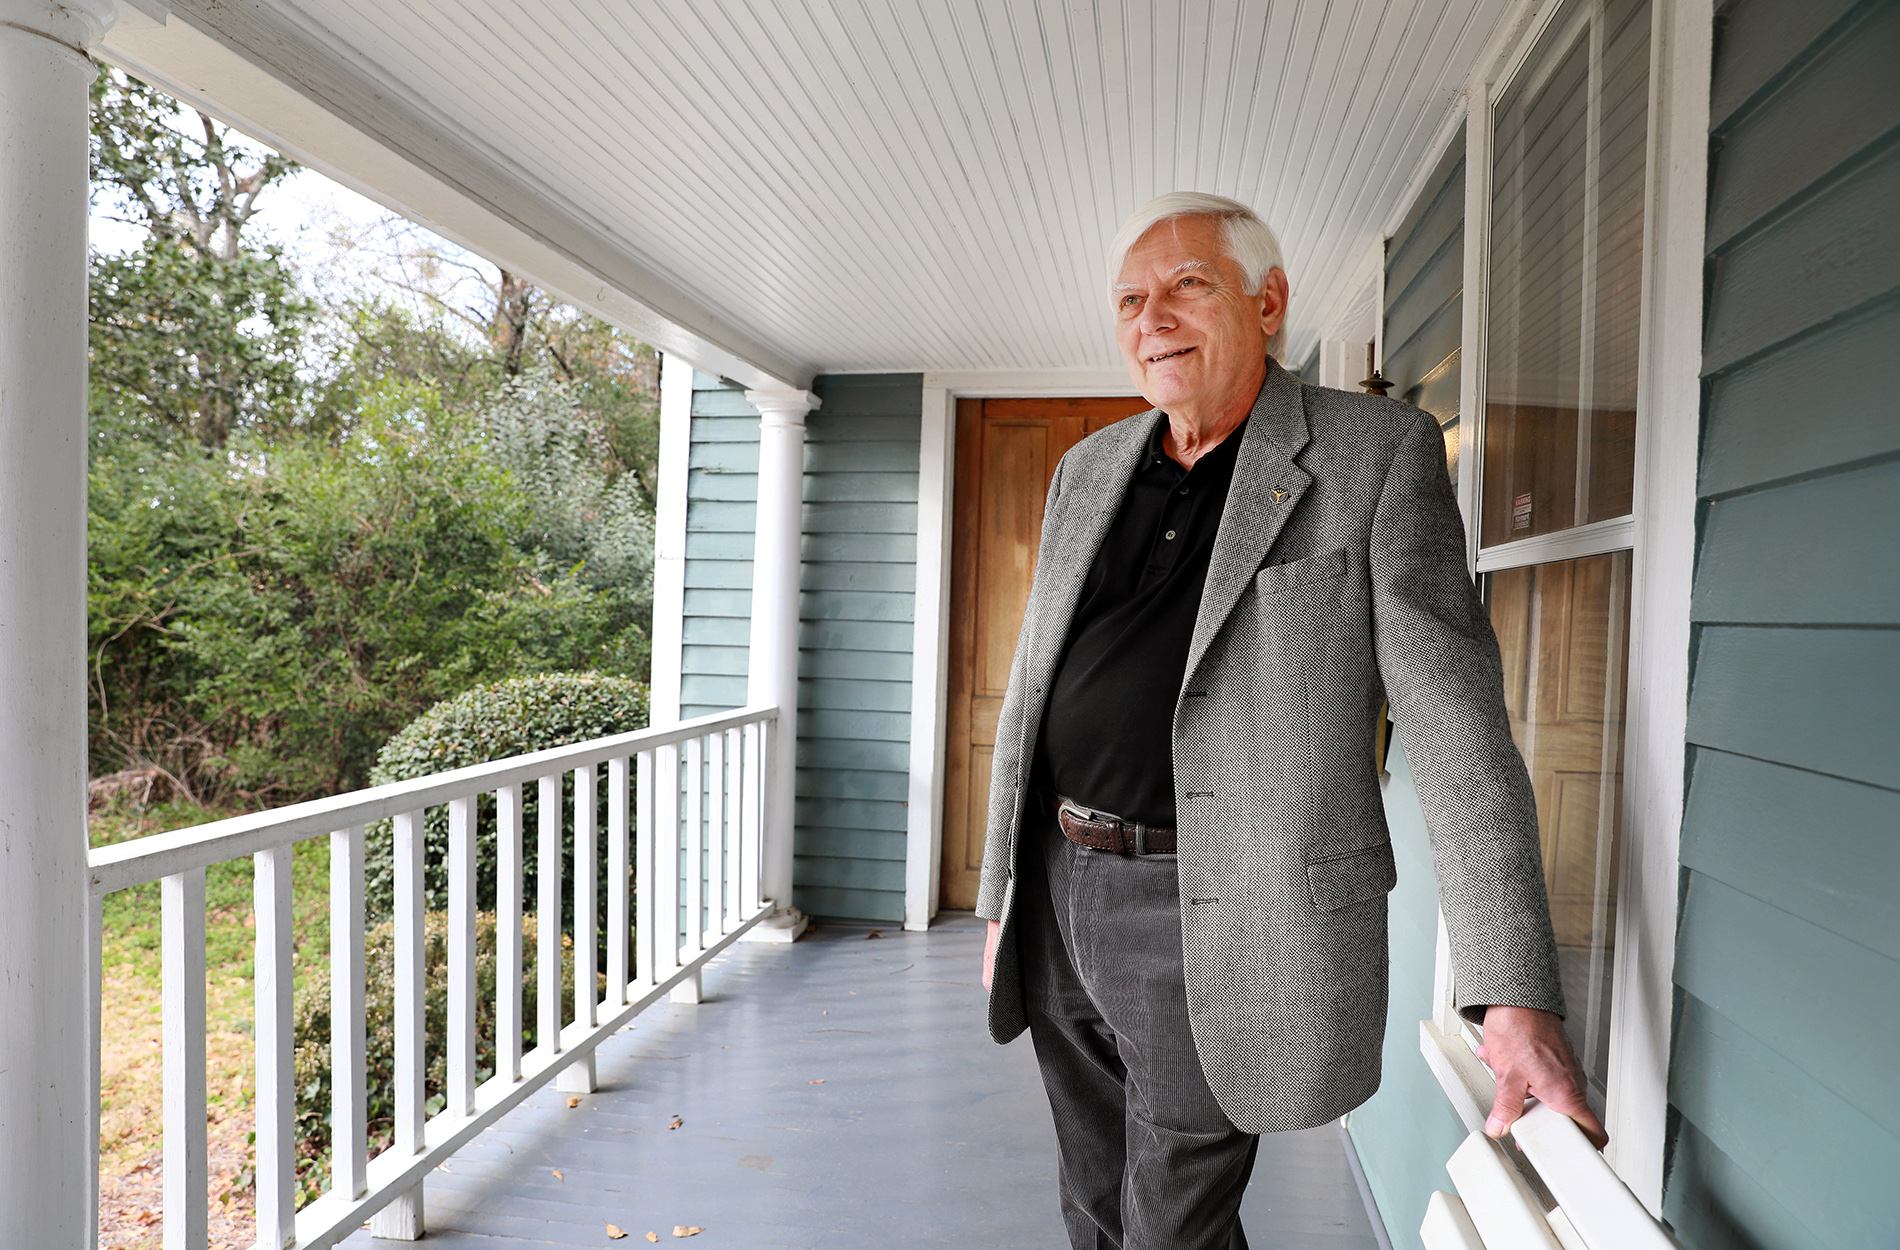 Dr. Harmon on porch of office